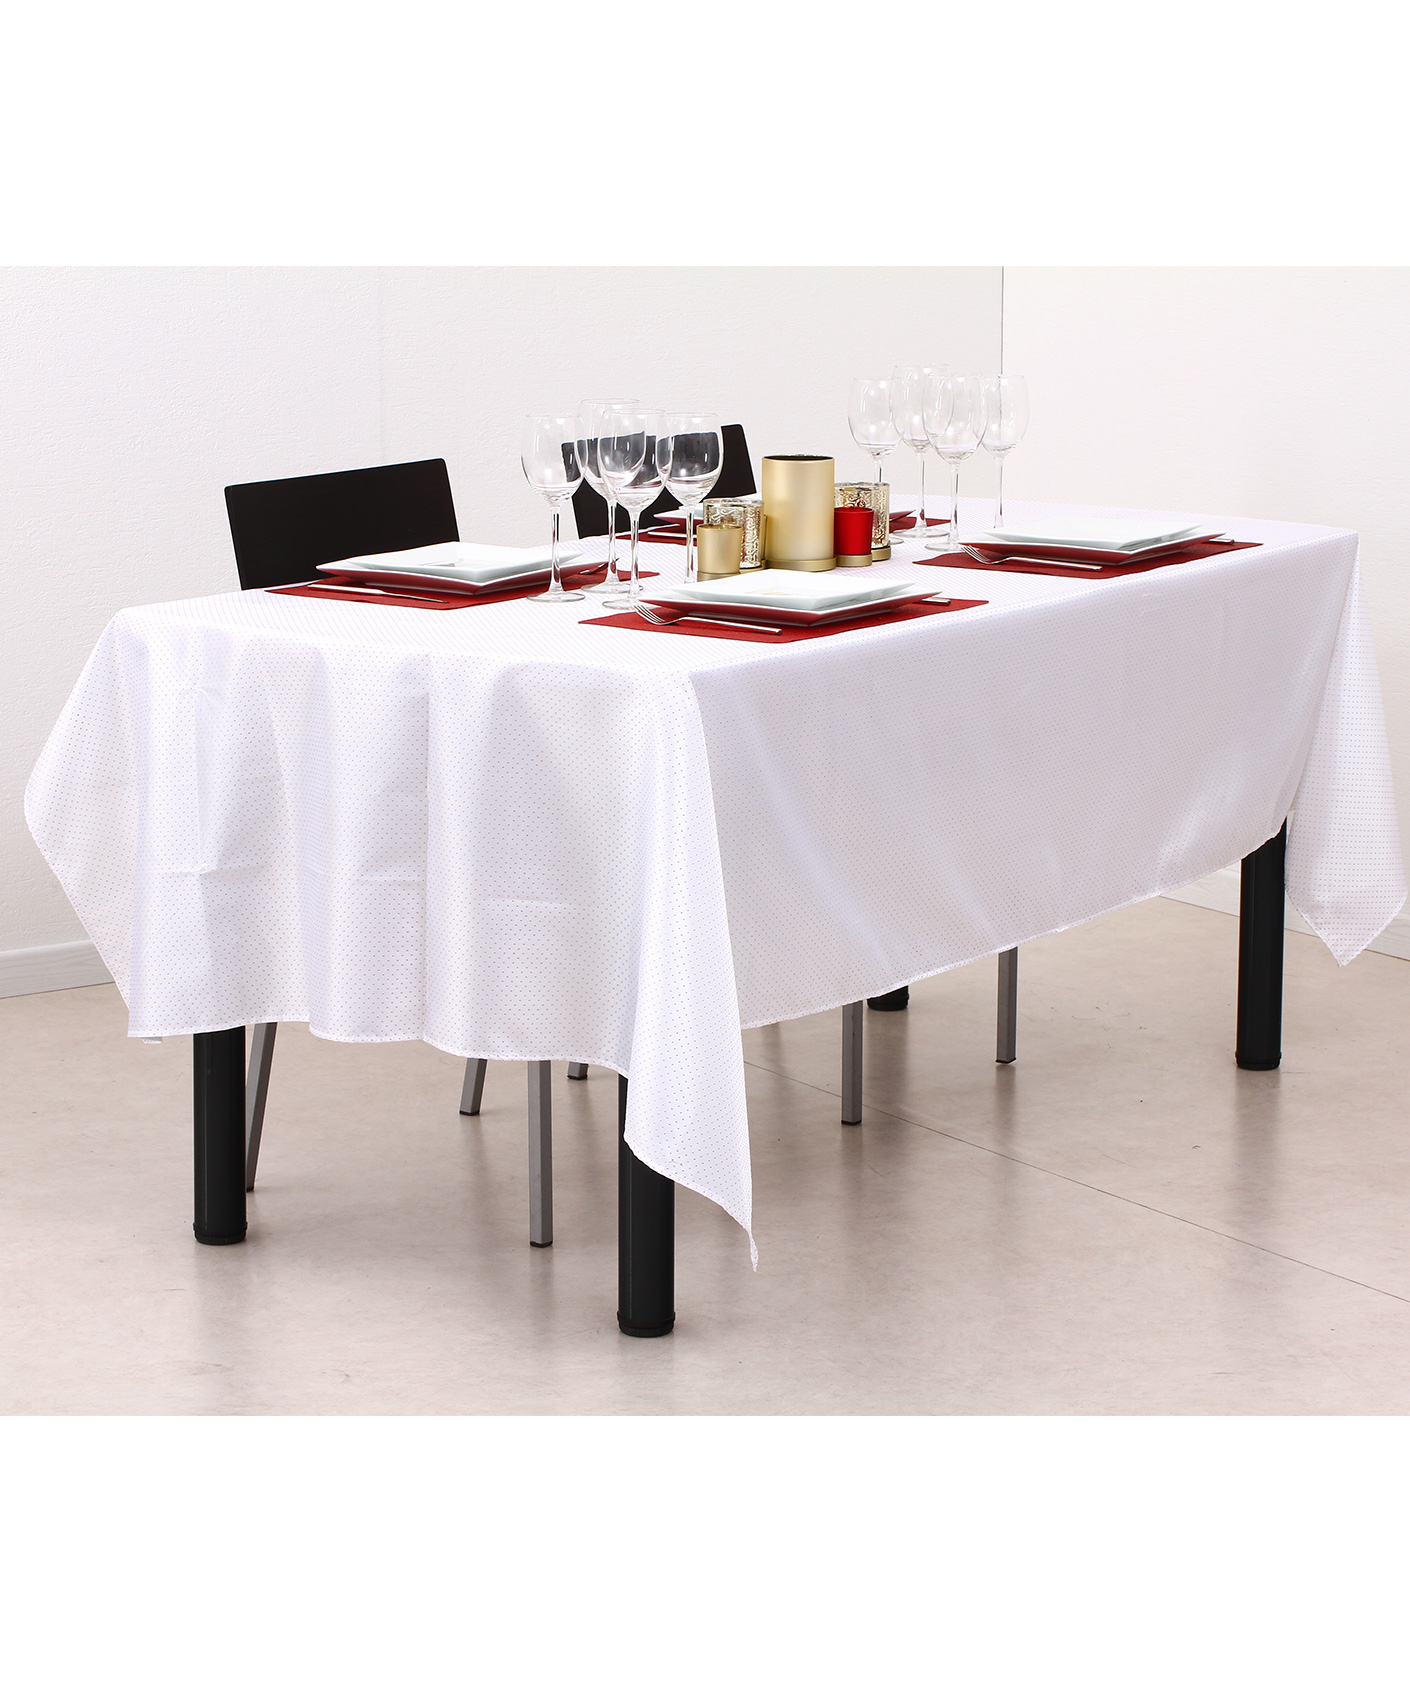 nappe en tissu rectangulaire blanche et or 140 x 240 cm. Black Bedroom Furniture Sets. Home Design Ideas